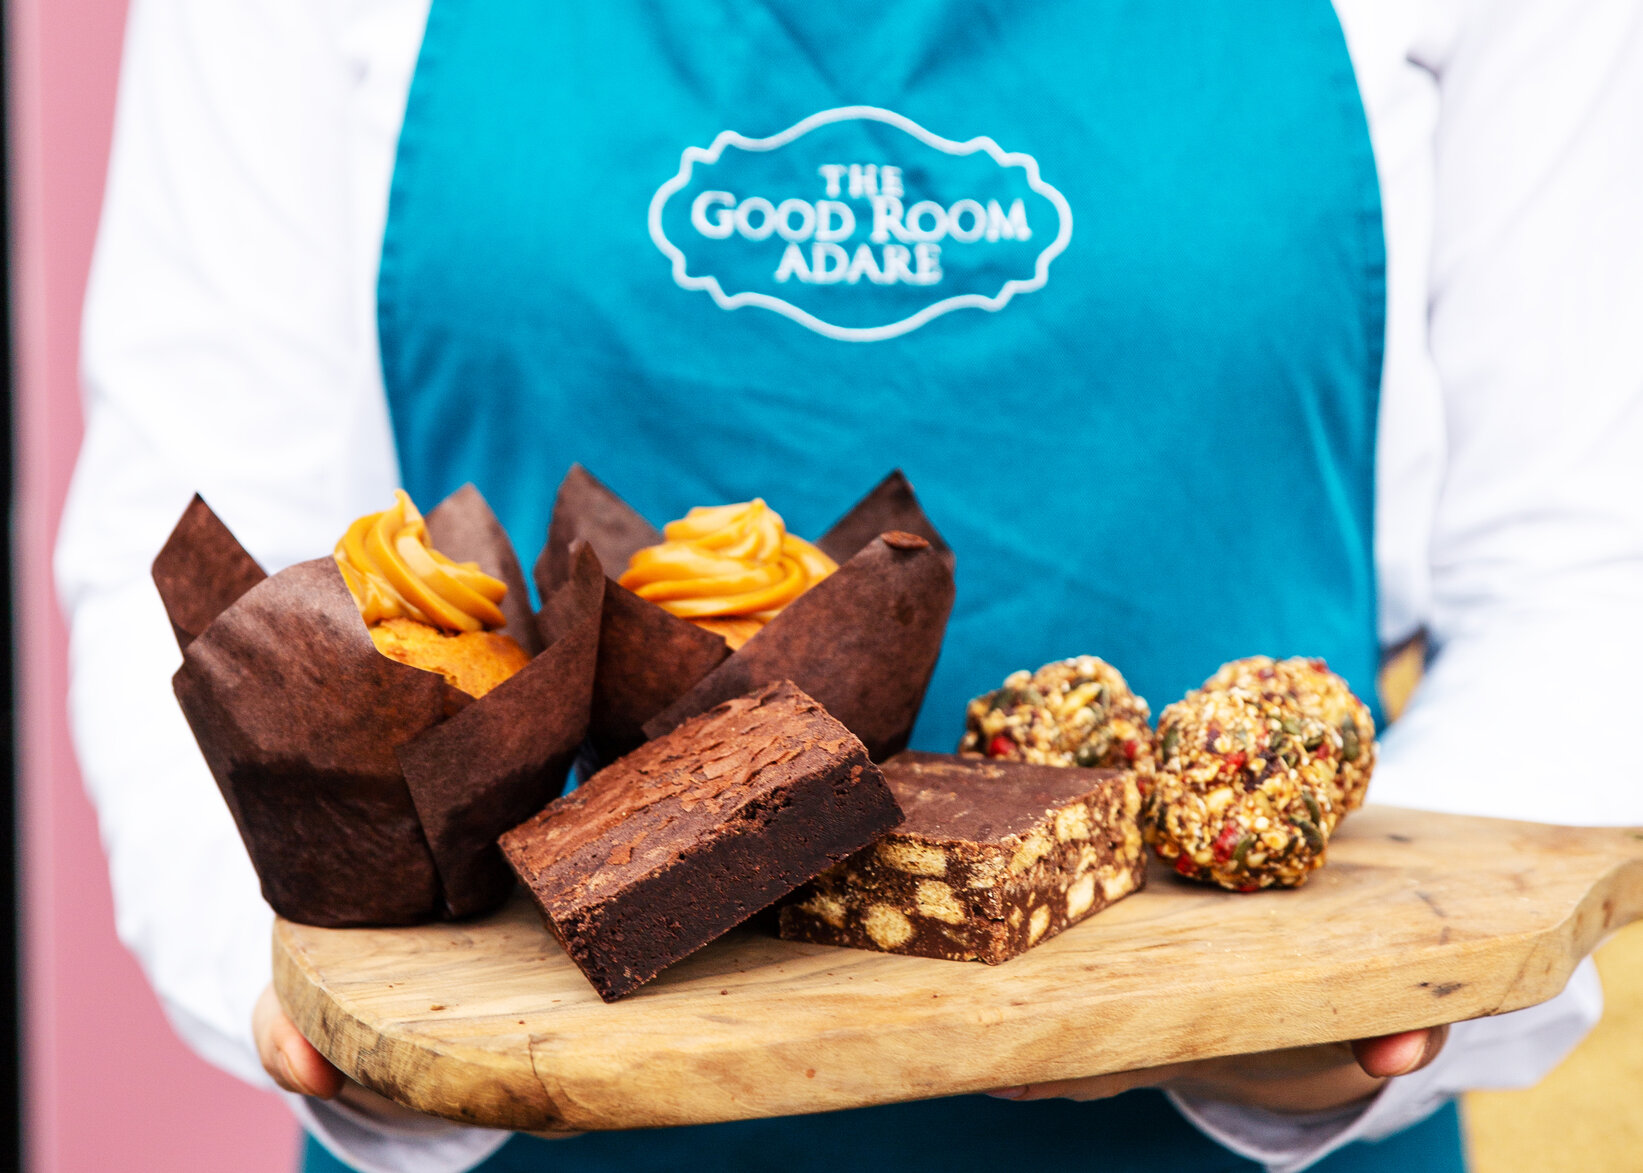 The Good Room was a previous Winner of the Cafe of The Year Munster